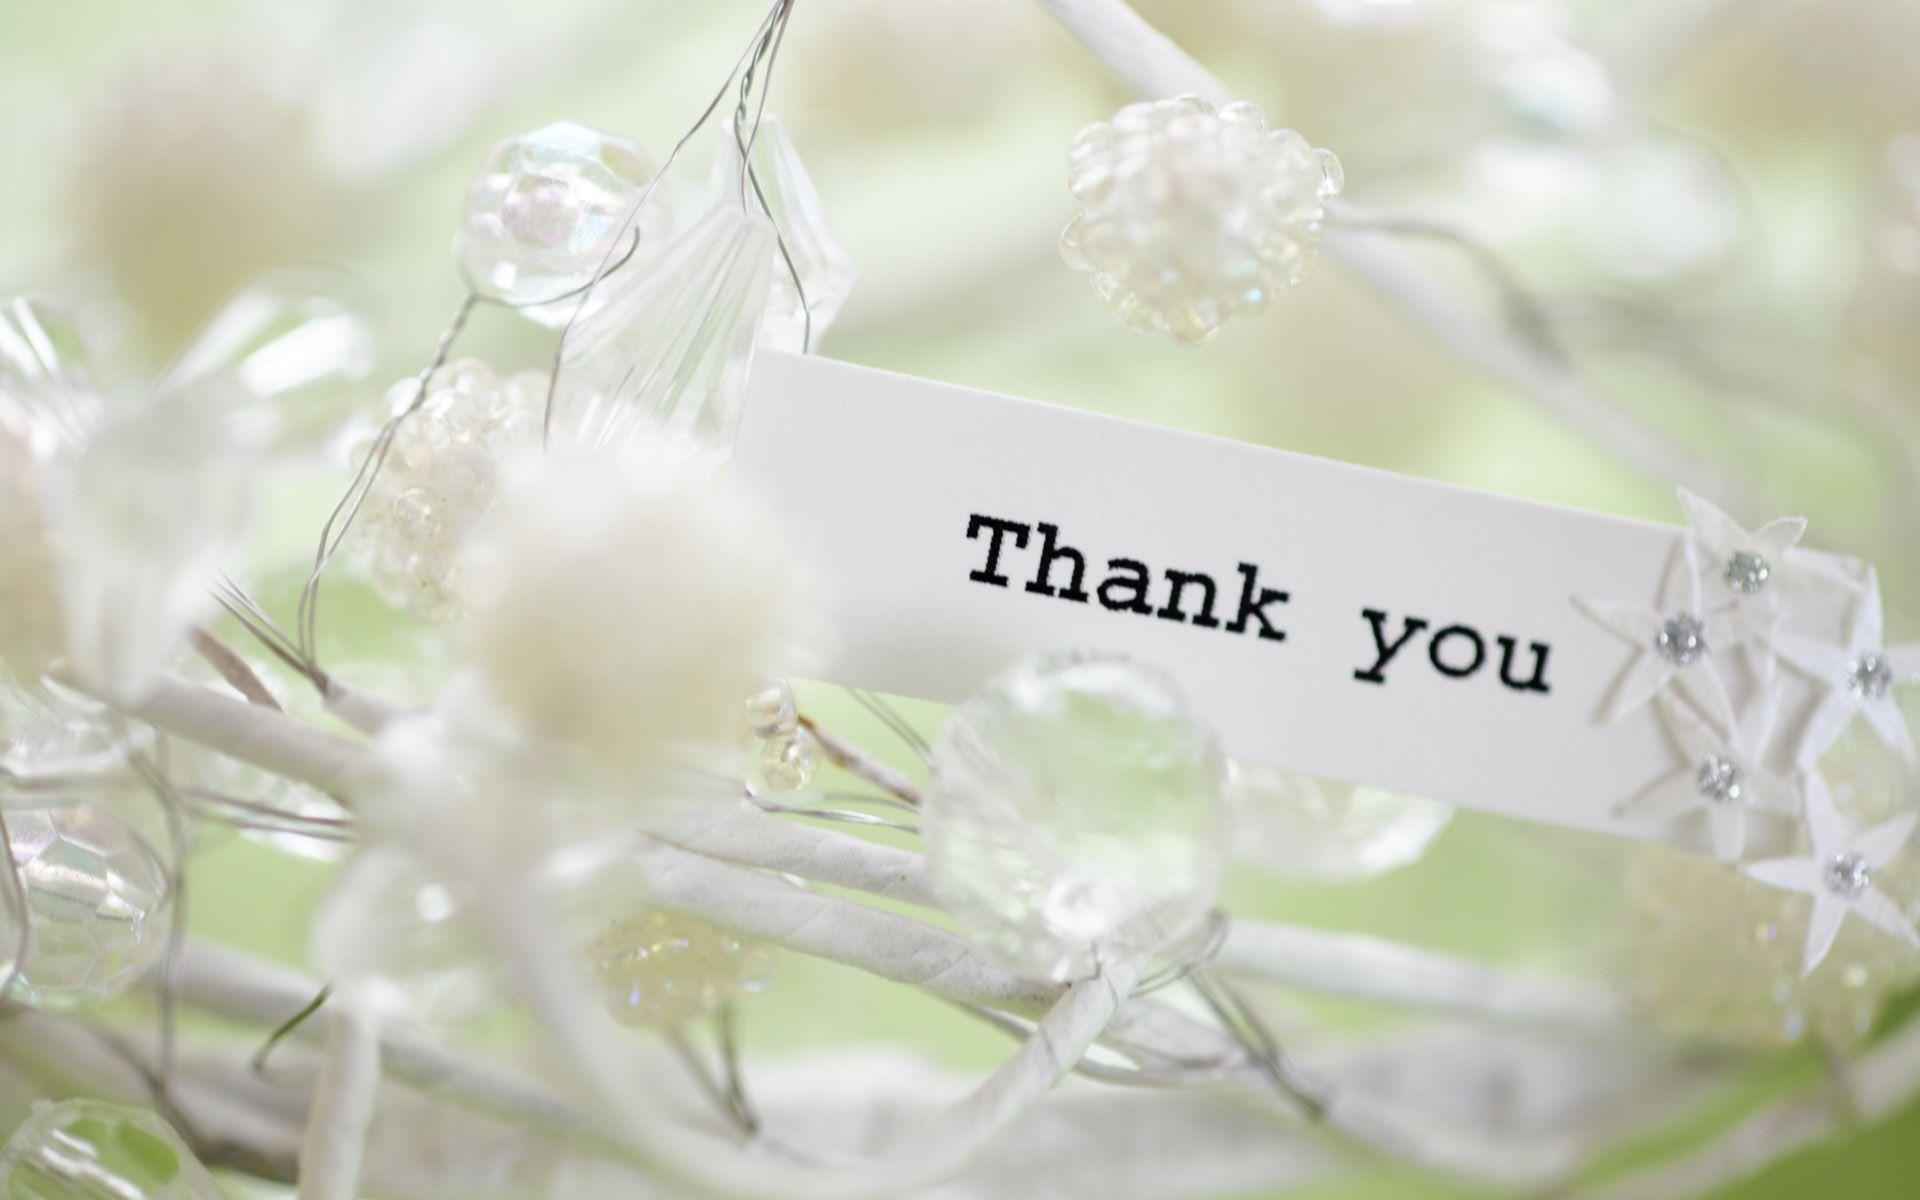 thank you images - photo #35